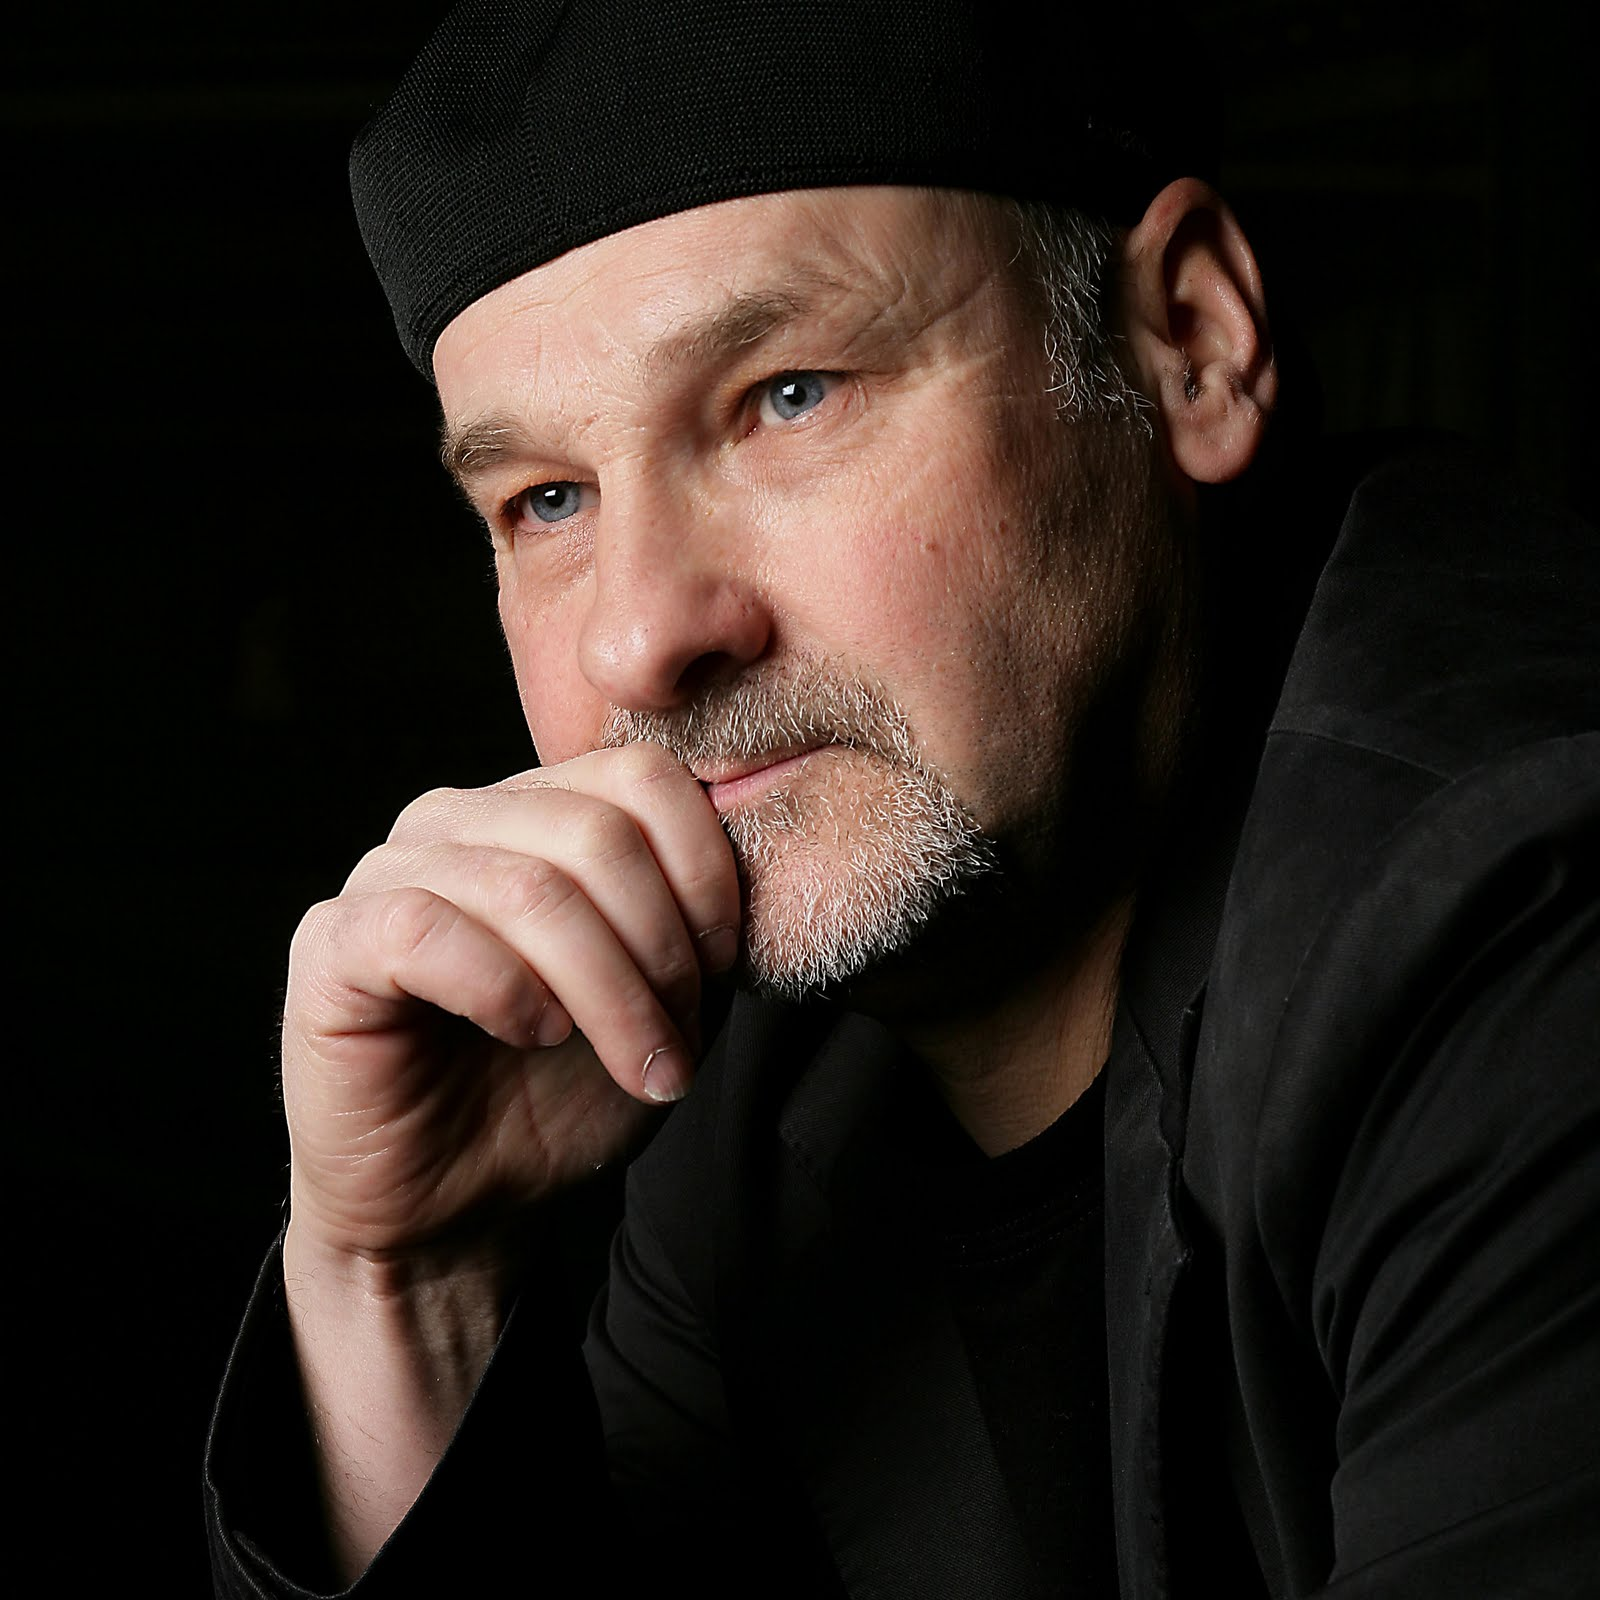 paul carrack height